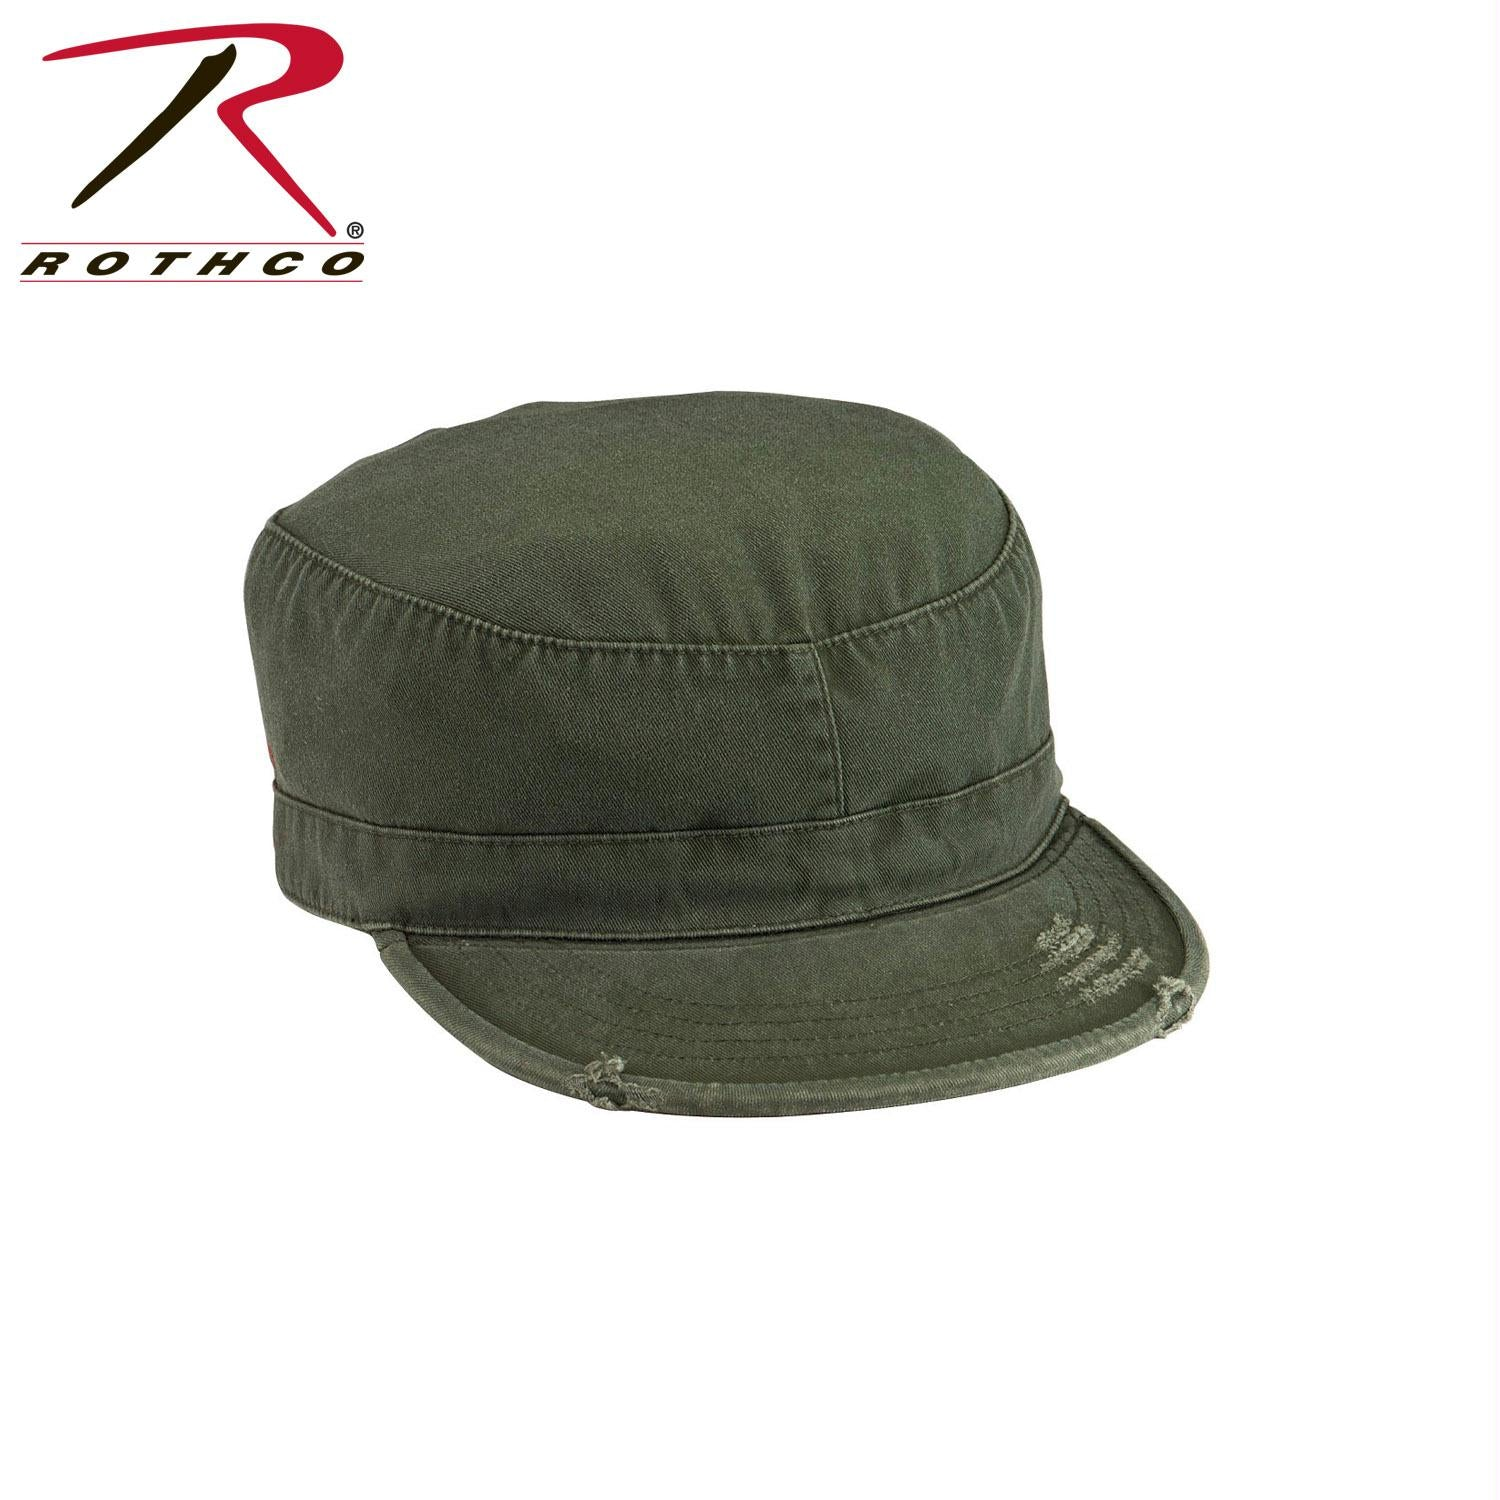 Rothco Solid Vintage Fatigue Cap - Olive Drab / XL